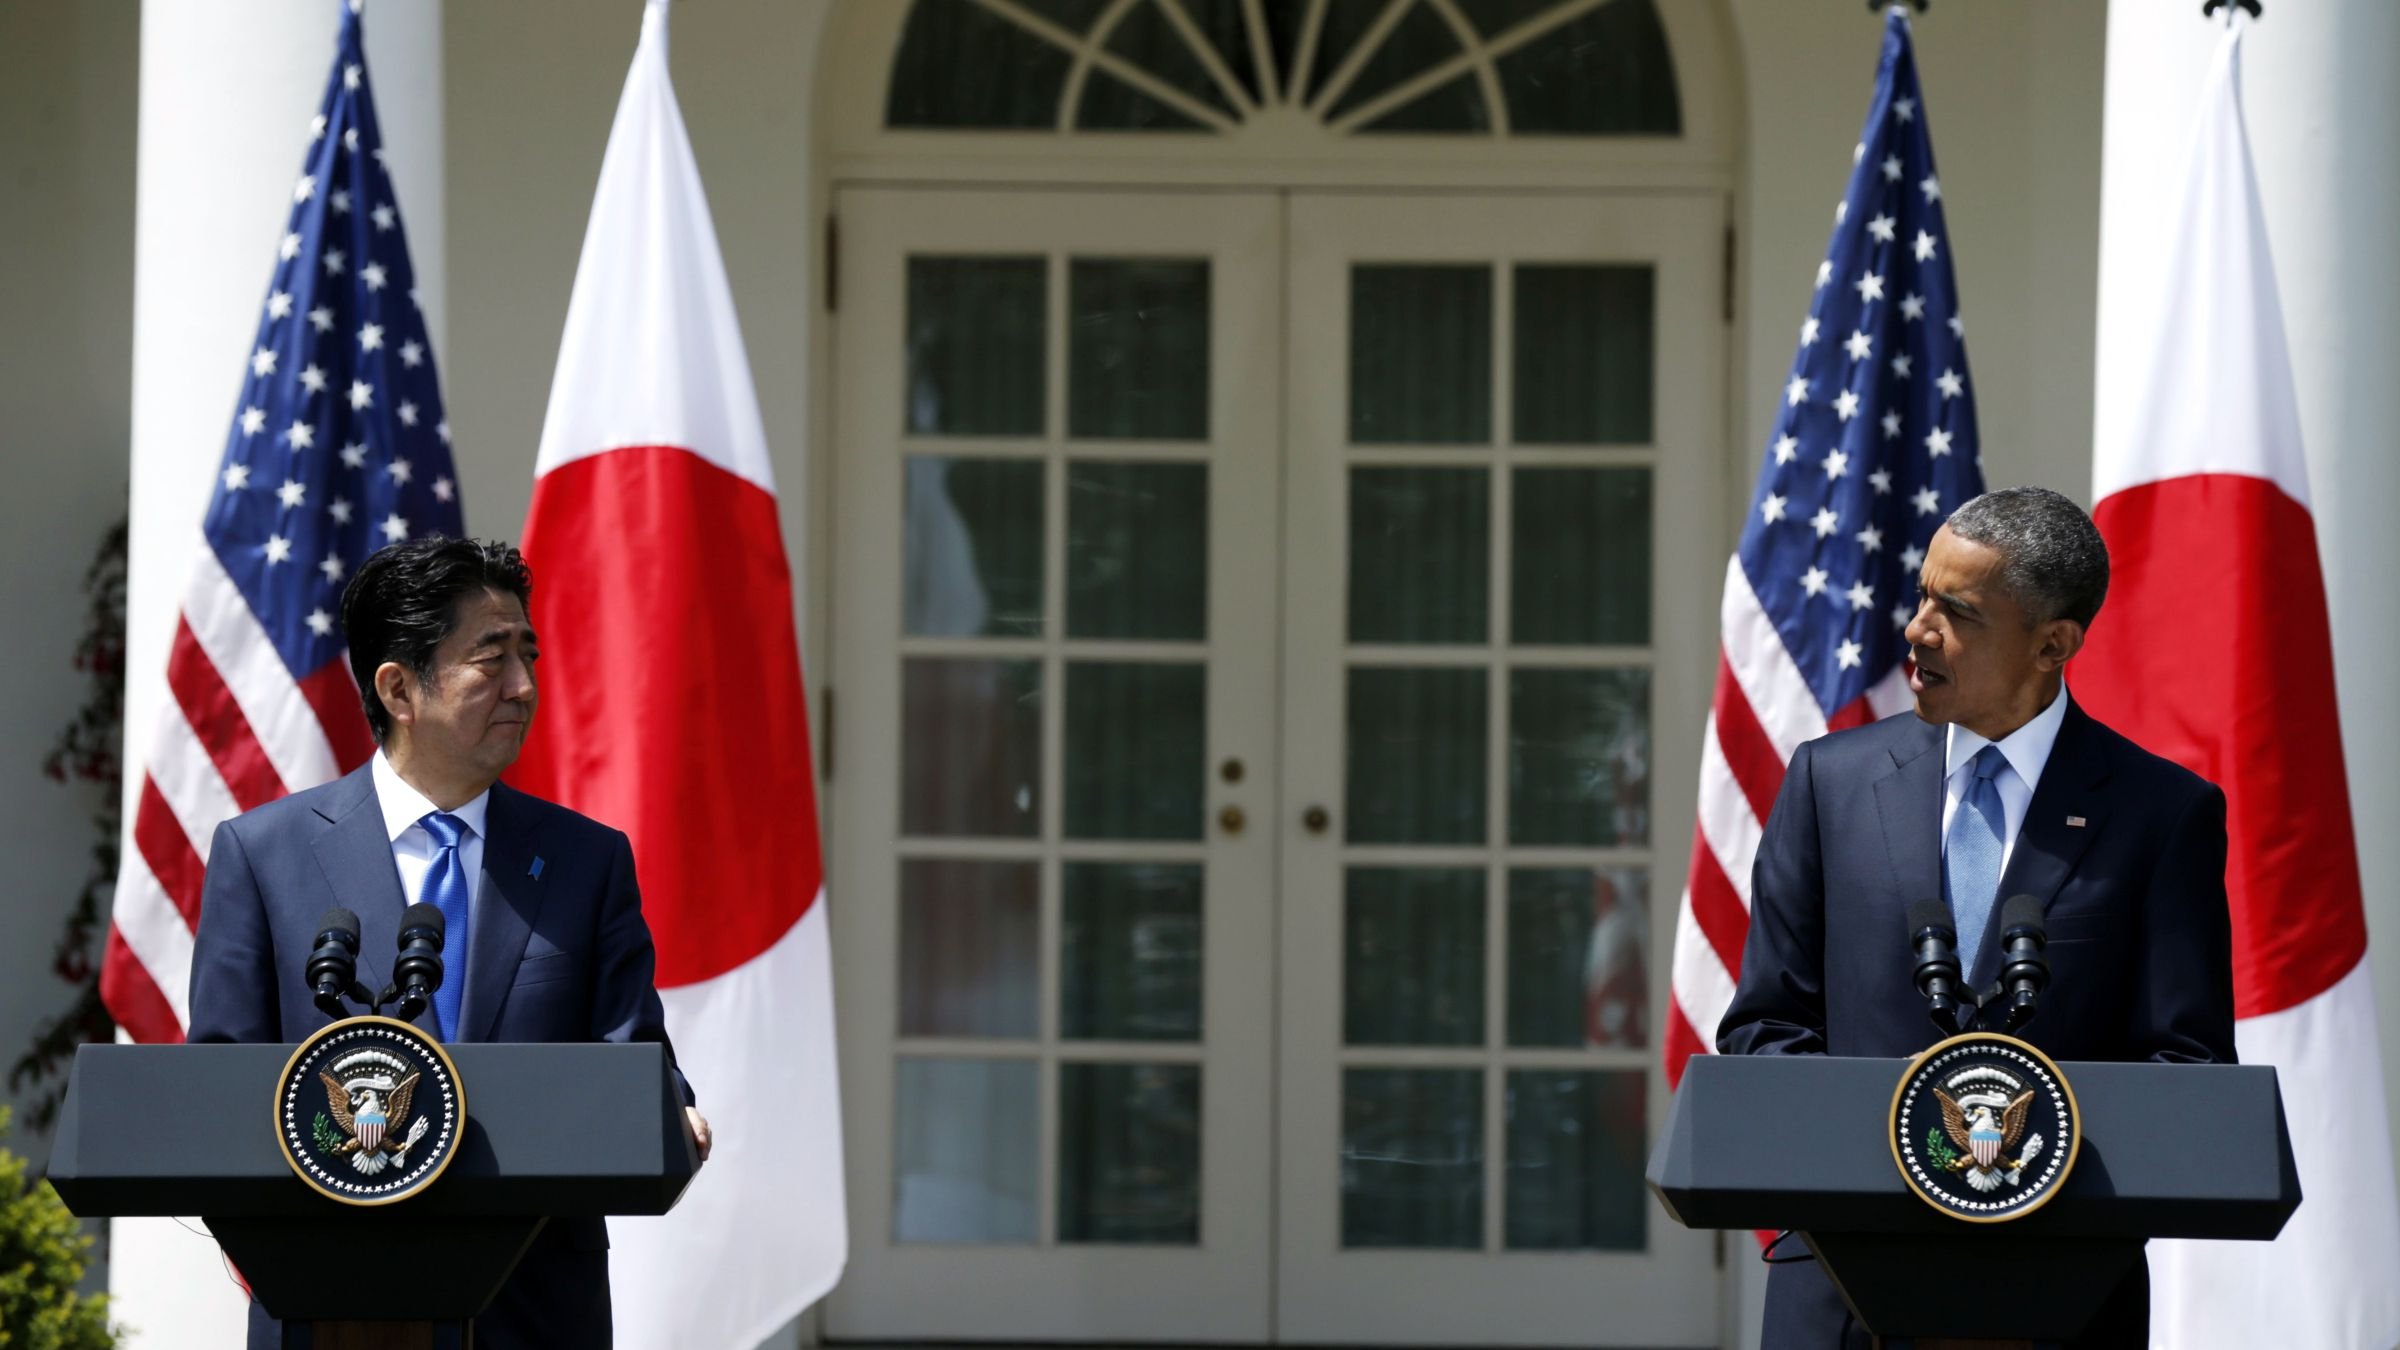 U.S. President Barack Obama (R) and Japanese Prime Minister Shinzo Abe hold a joint news conference in the Rose Garden of the White House in Washington, April 28, 2015.